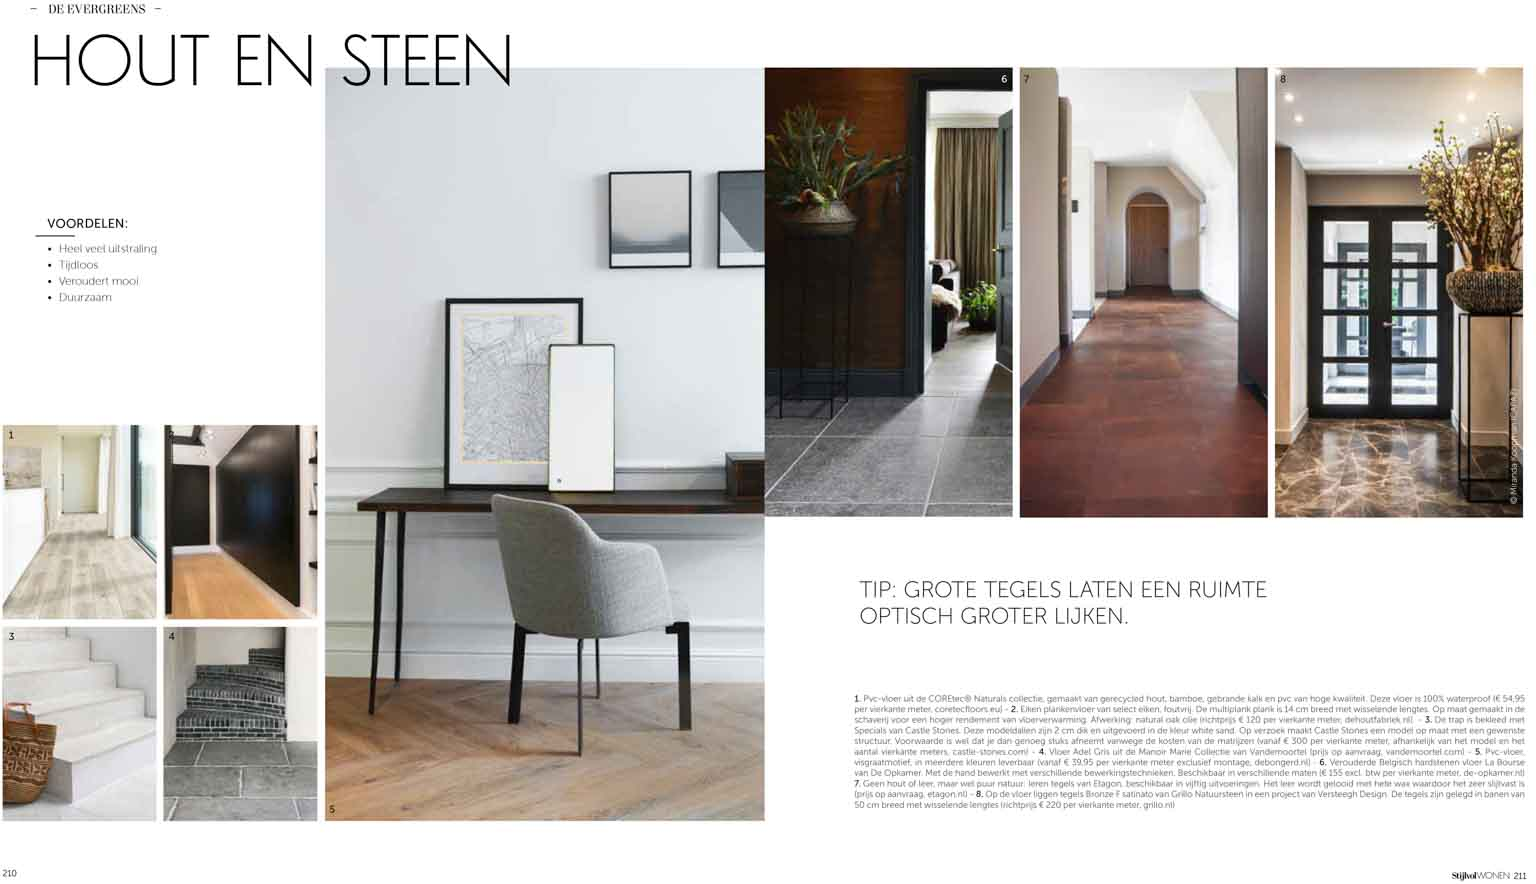 Floors made of wood and stone as inspiration